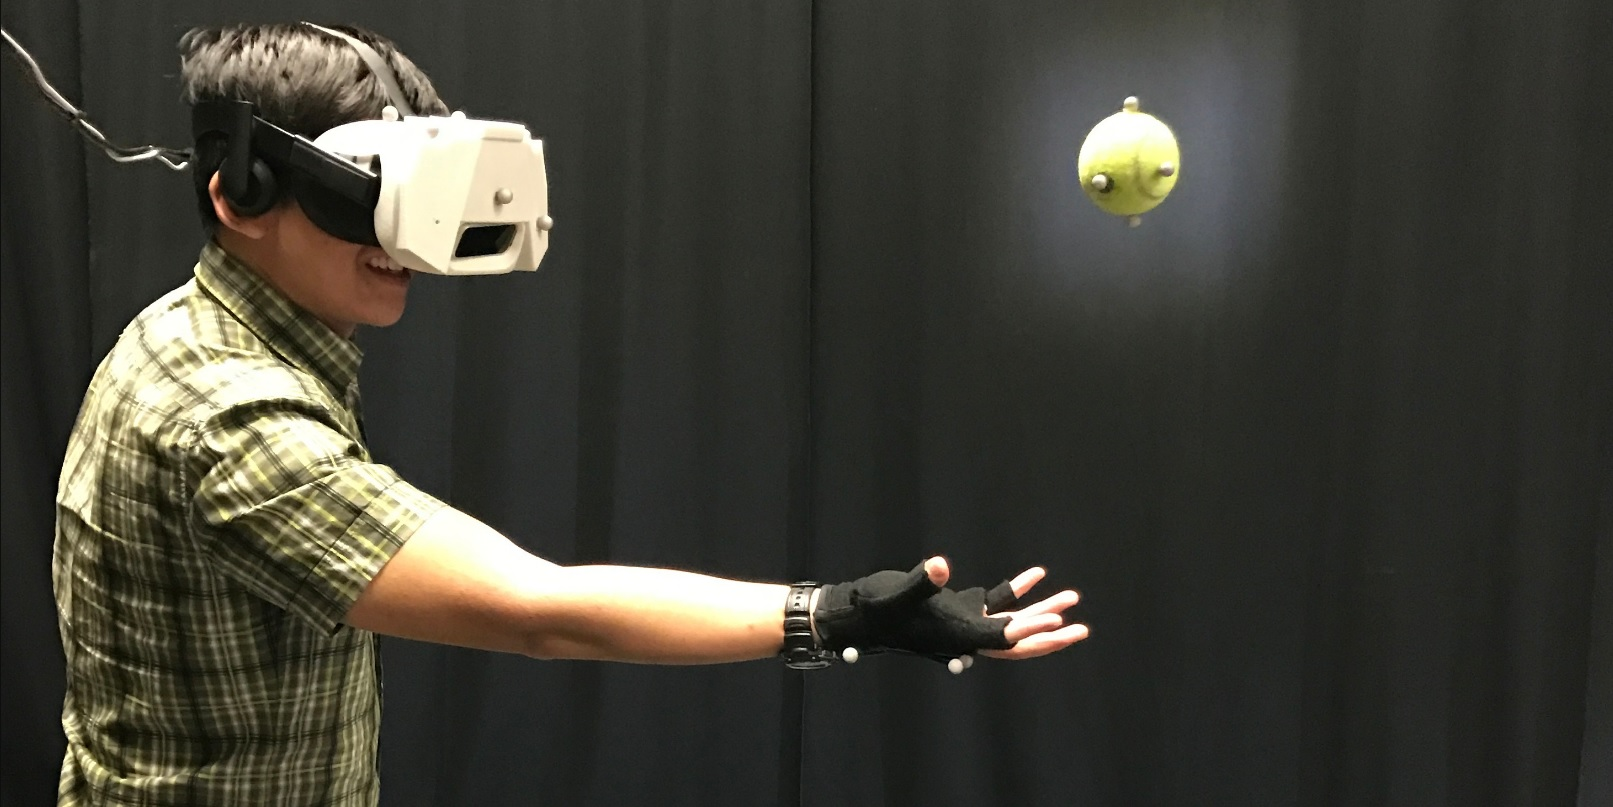 Vr Motion Tracking restringe il divario tra reale e digitale-5956